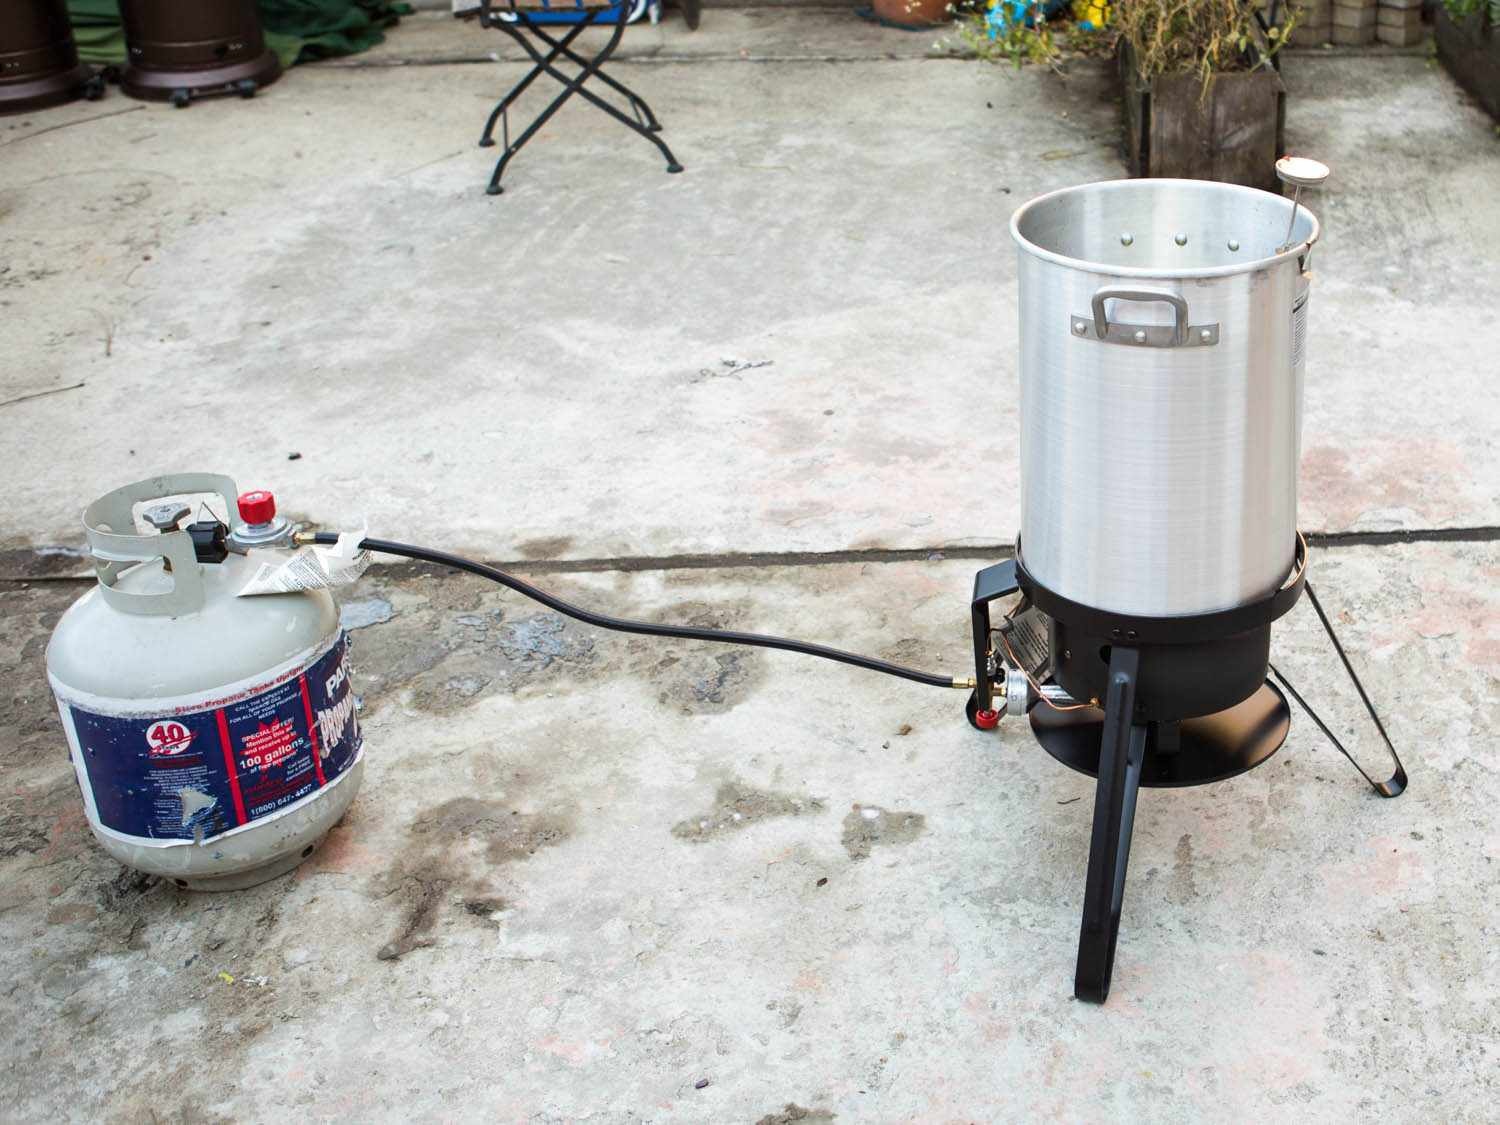 Demonstration of safe distance between propane gas tank and turkey fryer set up